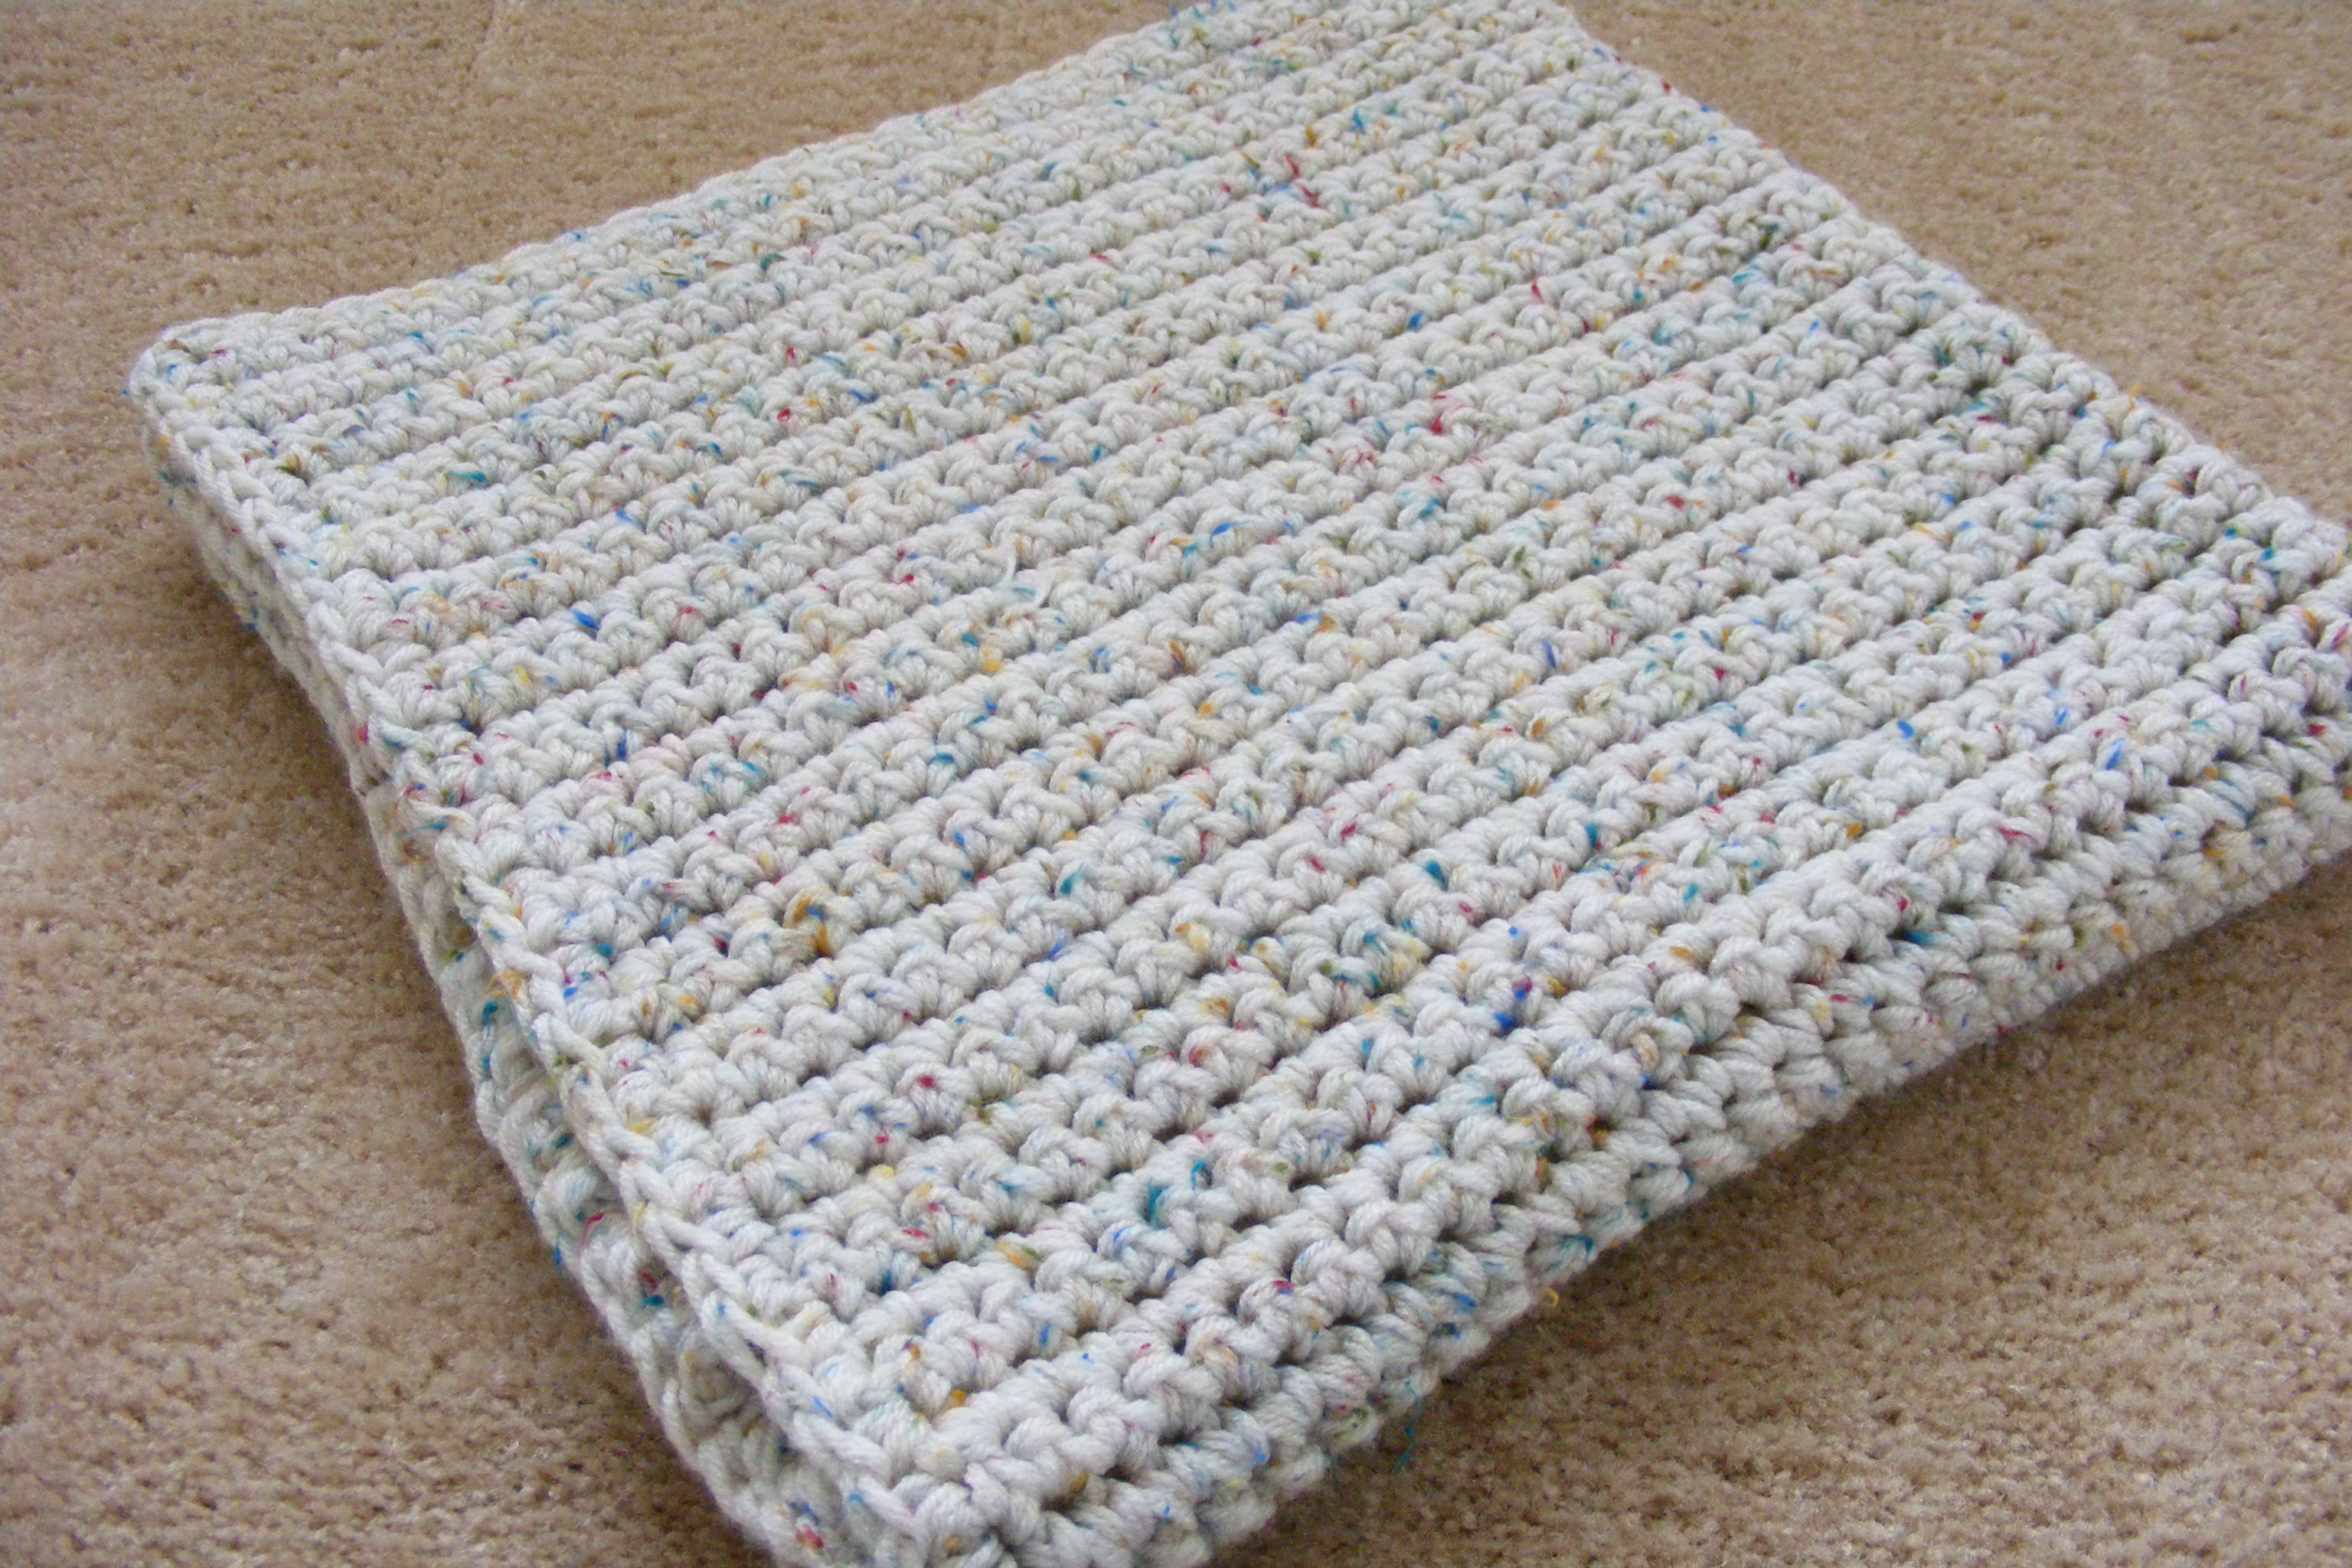 Single Crochet Patterns Inspirational Single Crochet Baby Blanket Of Single Crochet Patterns New Easy Diy Crochet Hats 2 Ways